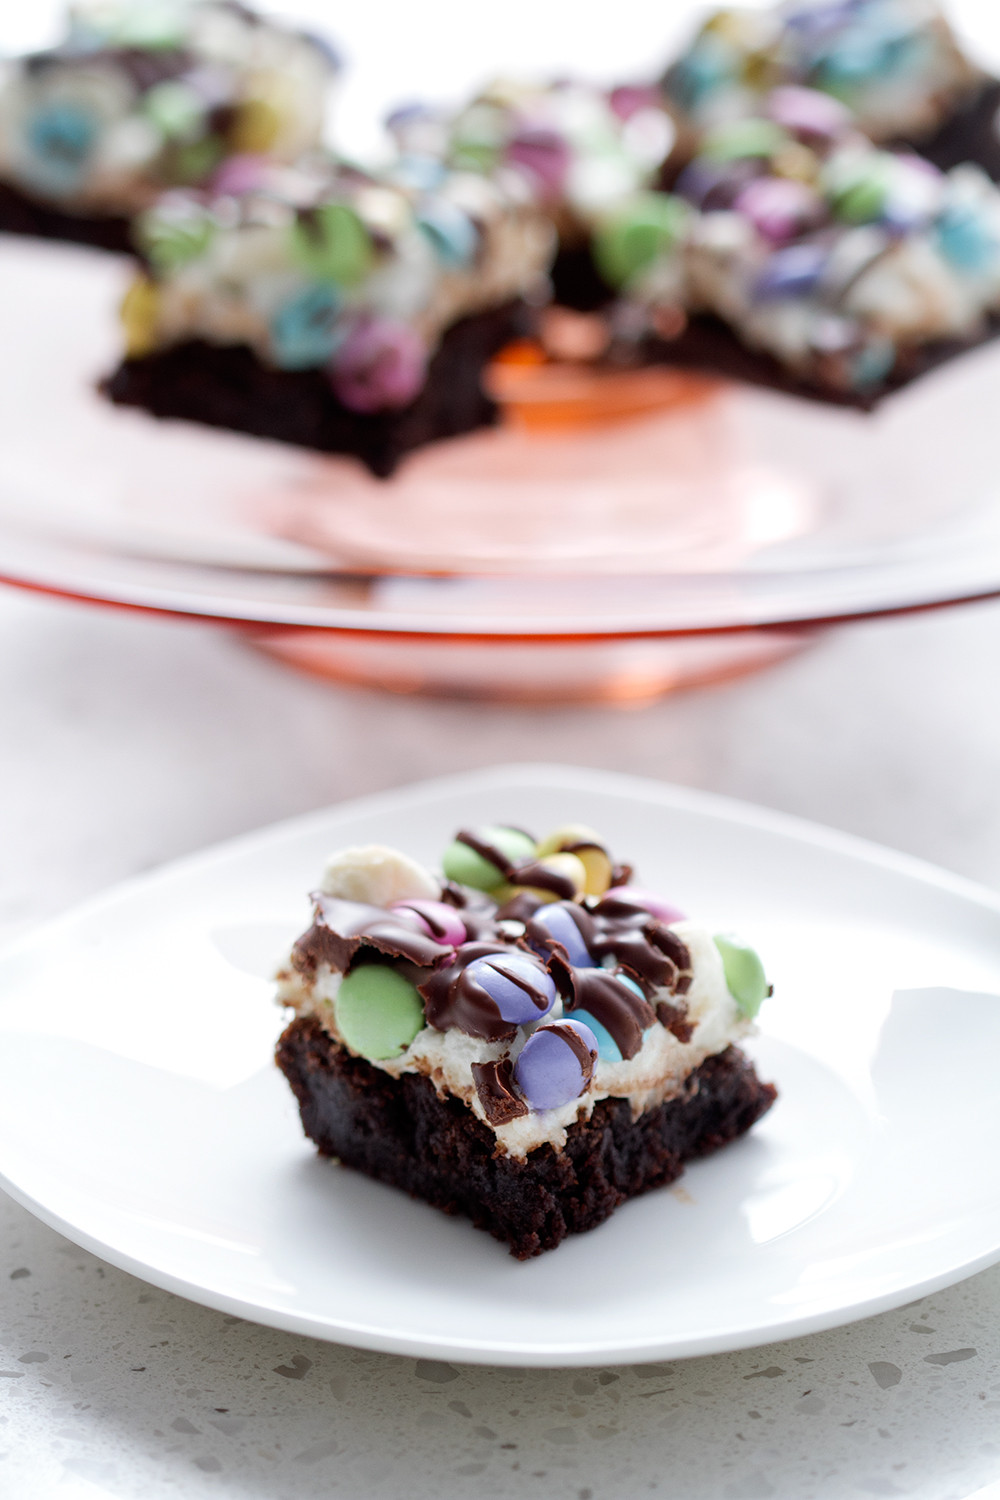 Brownie Easter Desserts  EASTER PASTEL BROWNIE DESSERT RECIPE